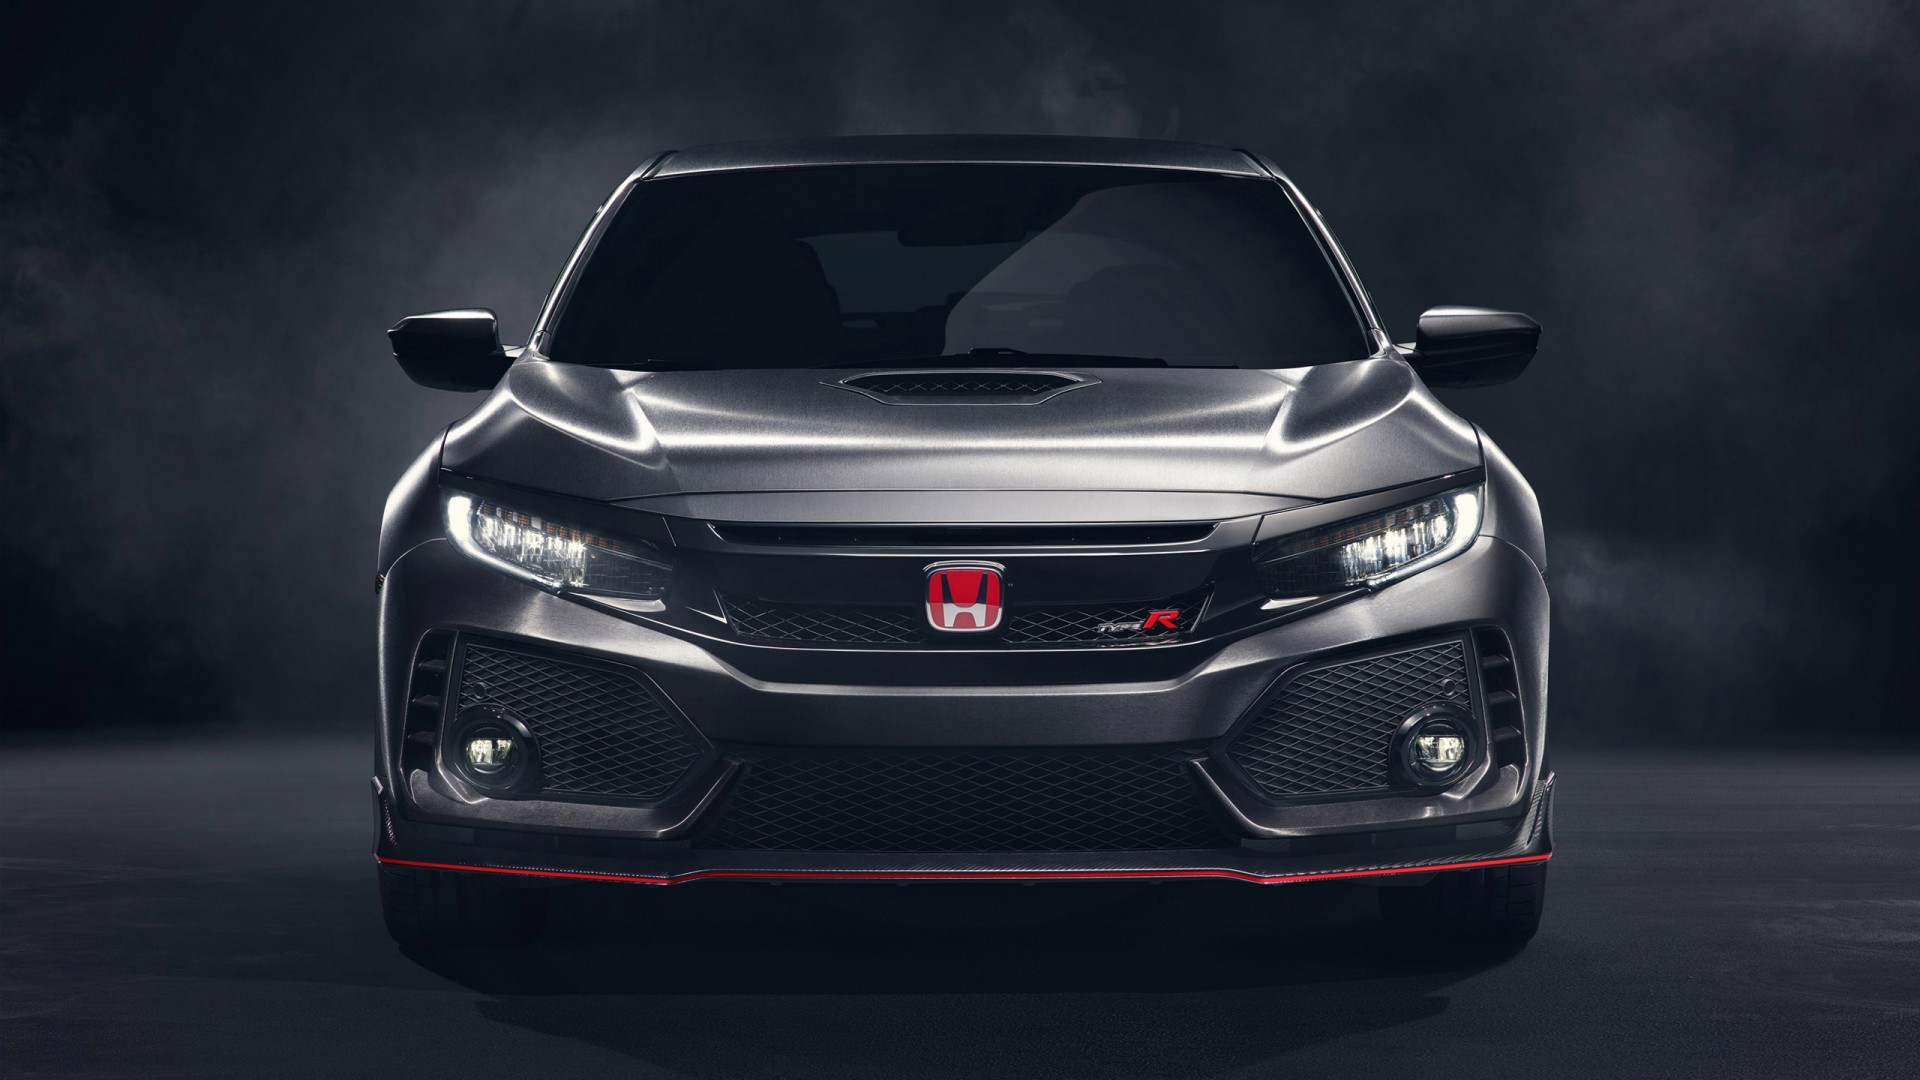 2017 Honda Civic Type R Wallpaper